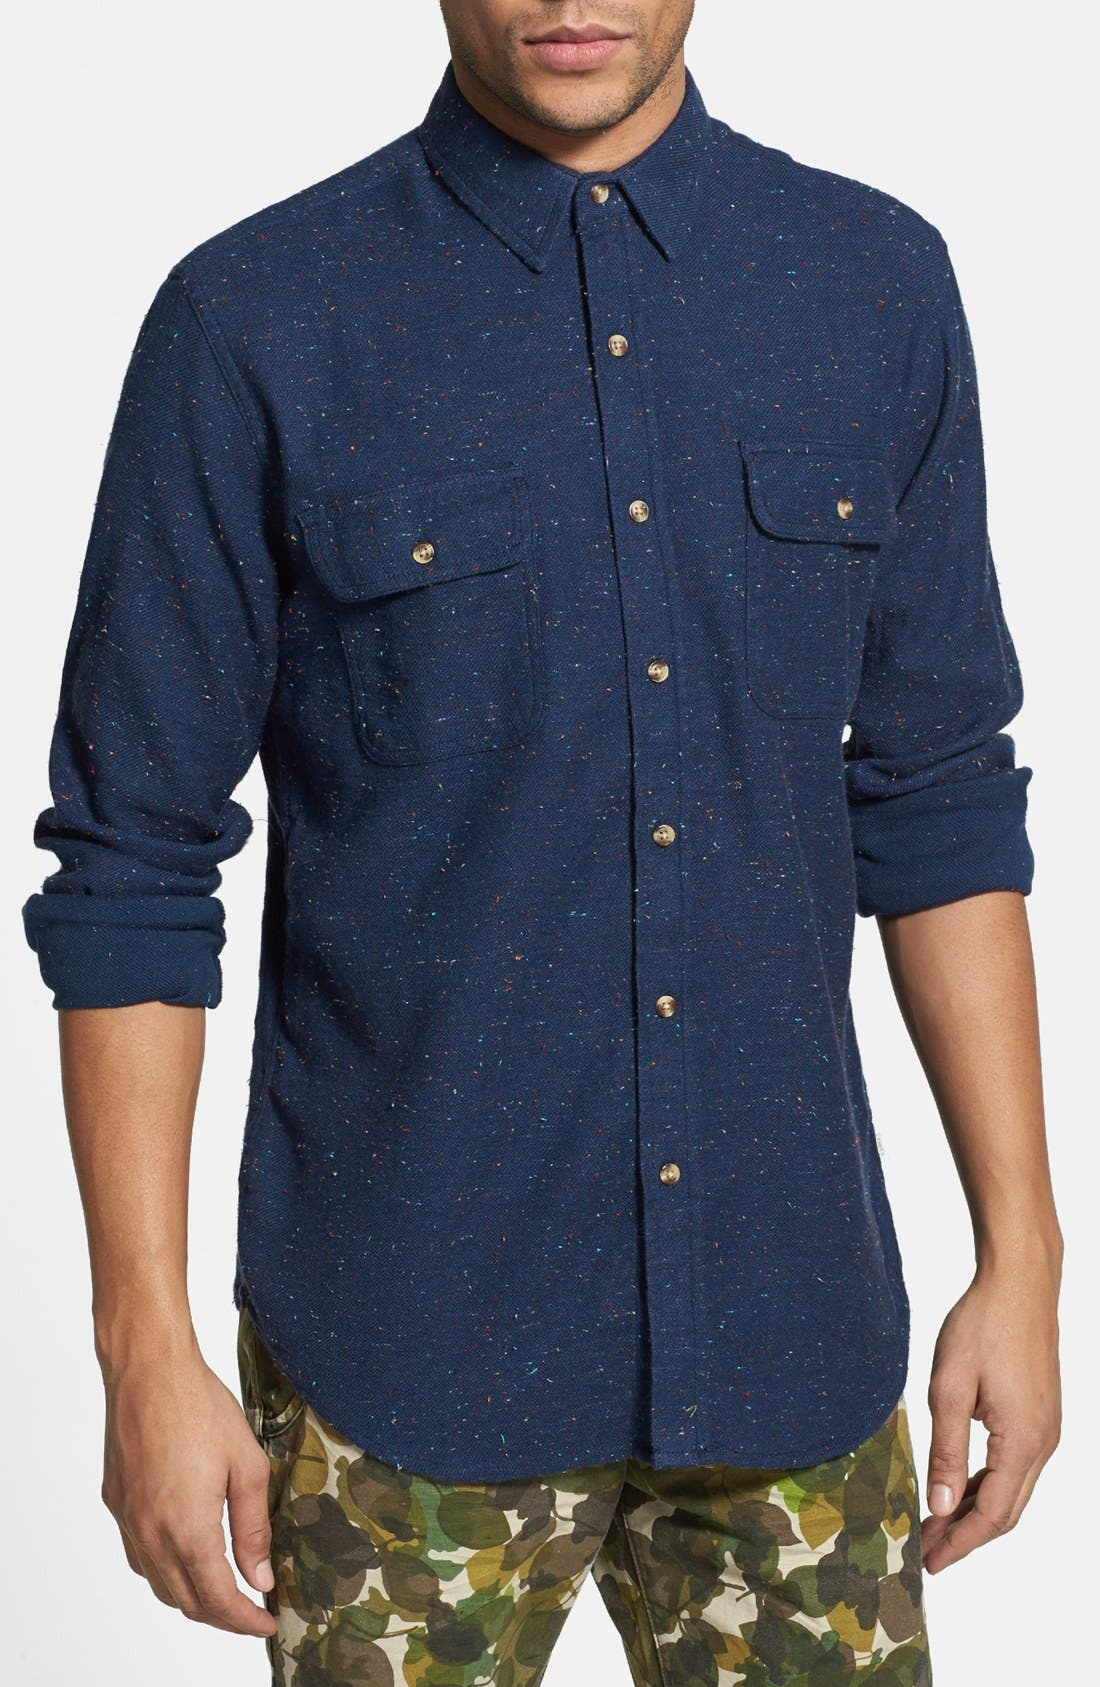 Main Image - Obey 'Heritage' Flecked Cotton Shirt